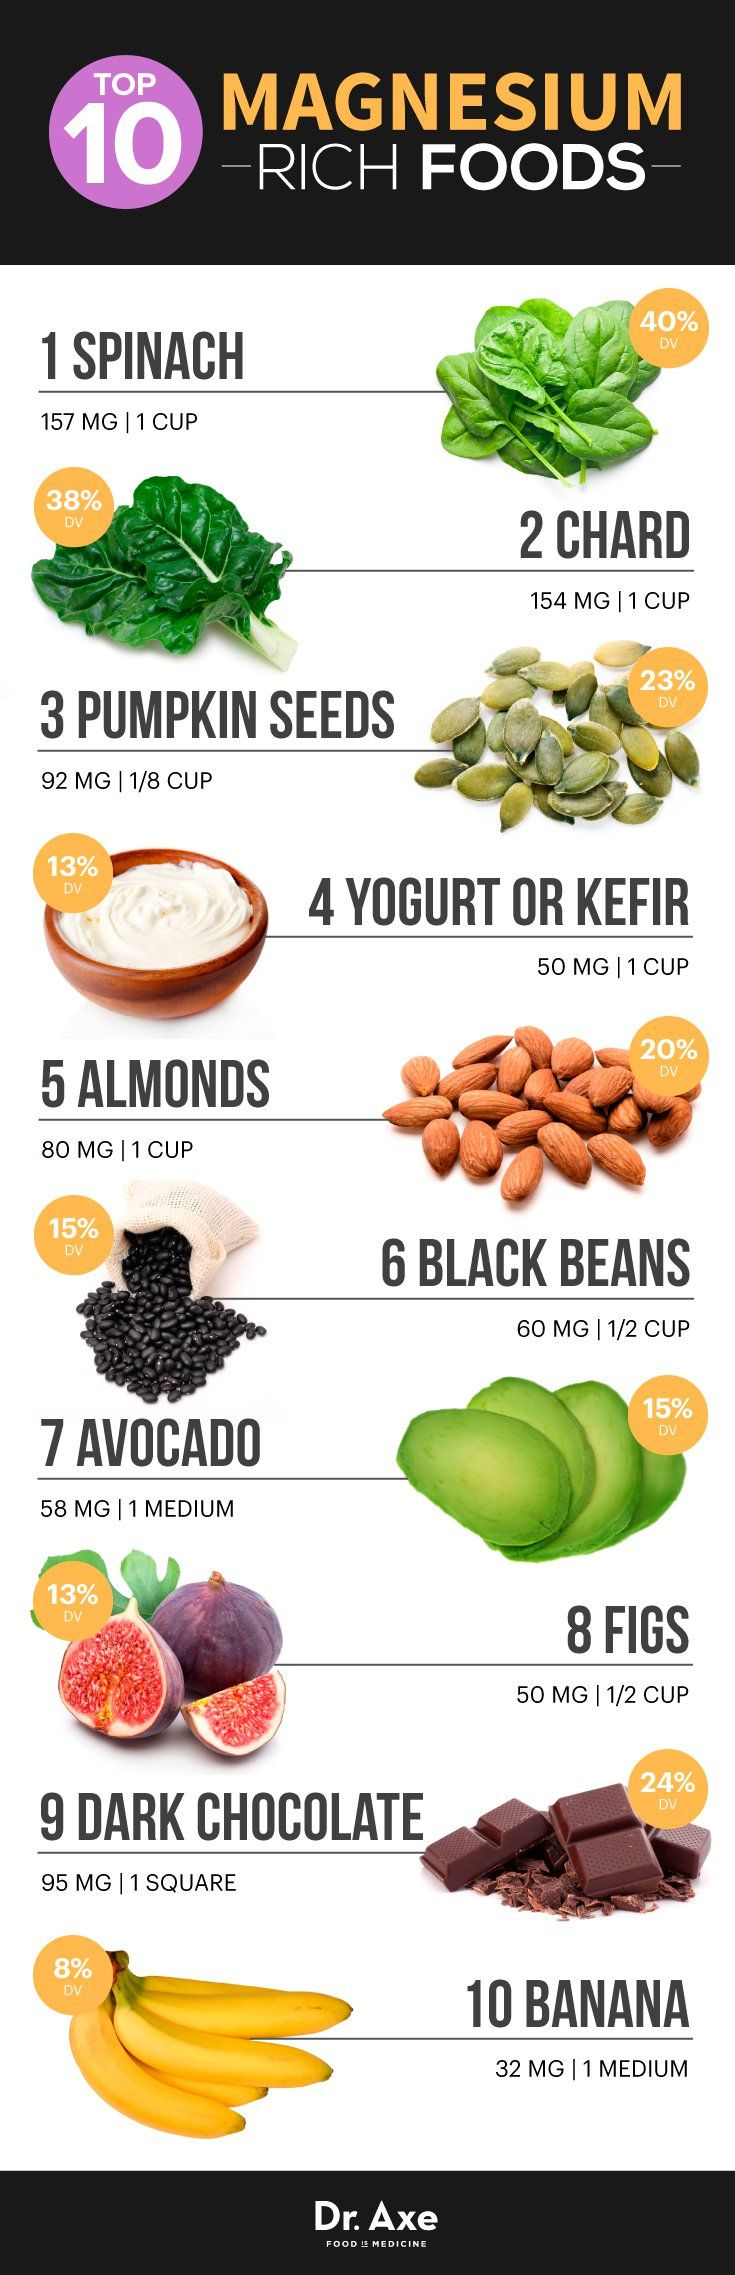 Top 10 Magnesium Rich Foods Infographic plus how to increase your magnesium intake, benefits of magnesium and causes of magnesium deficiency.